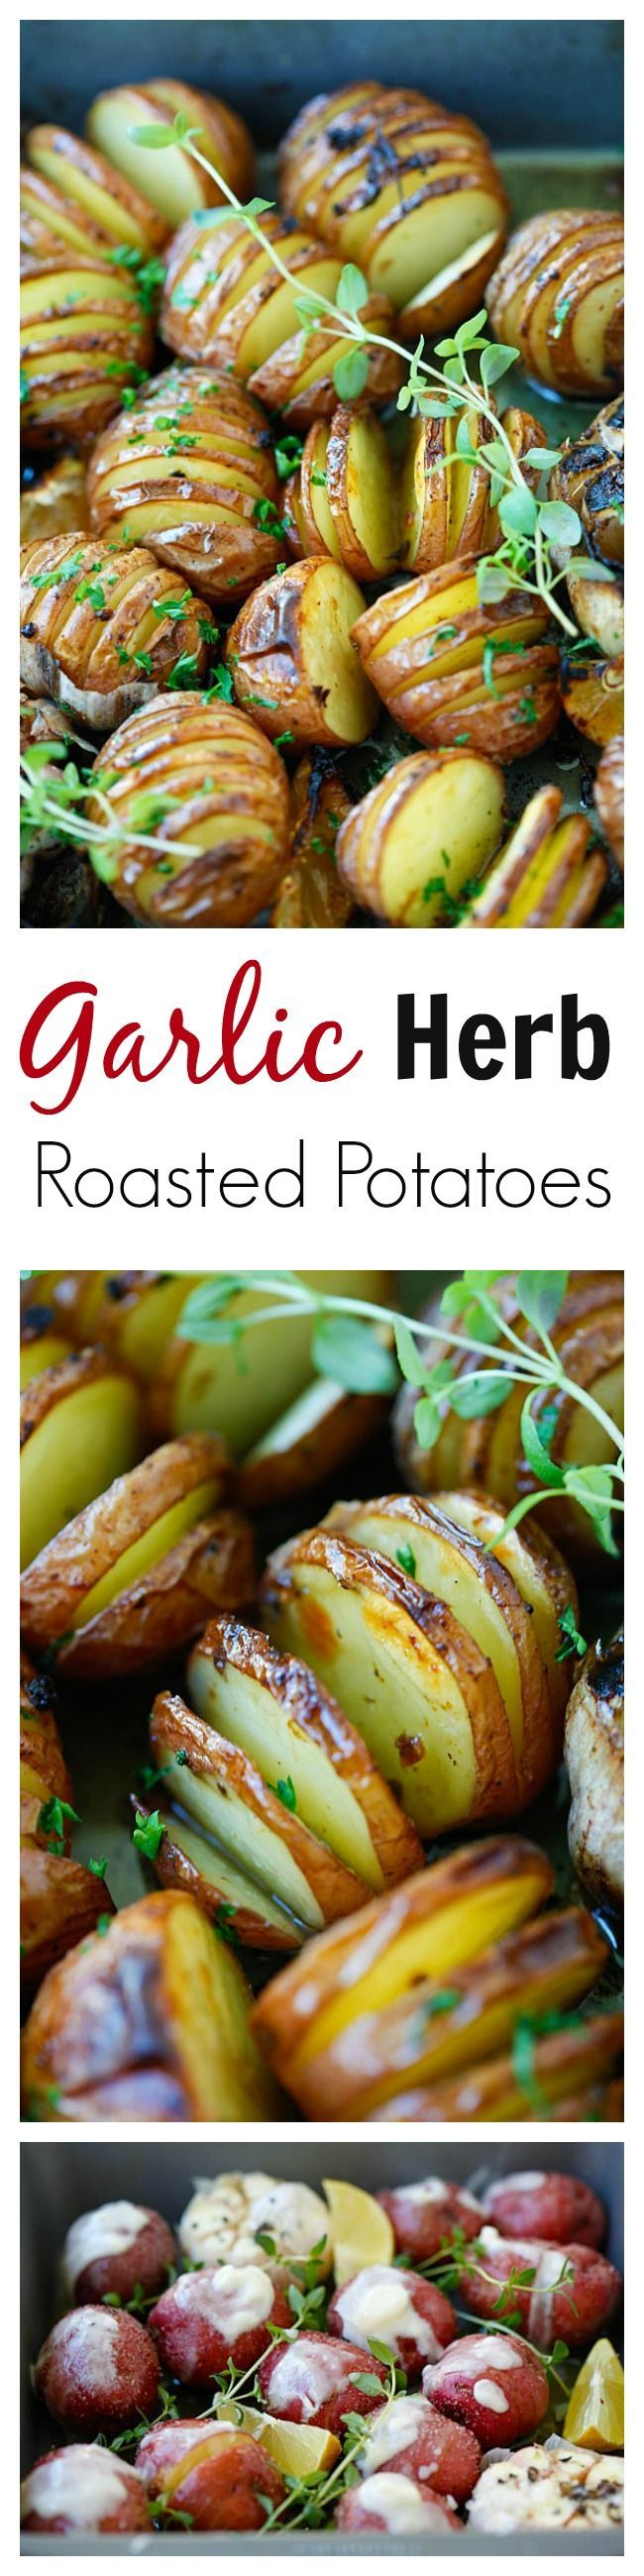 Garlic Herb Roasted Potatoes – the easiest and delicious roasted potatoes with olive oil, butter, garlic, herb and lemon!!